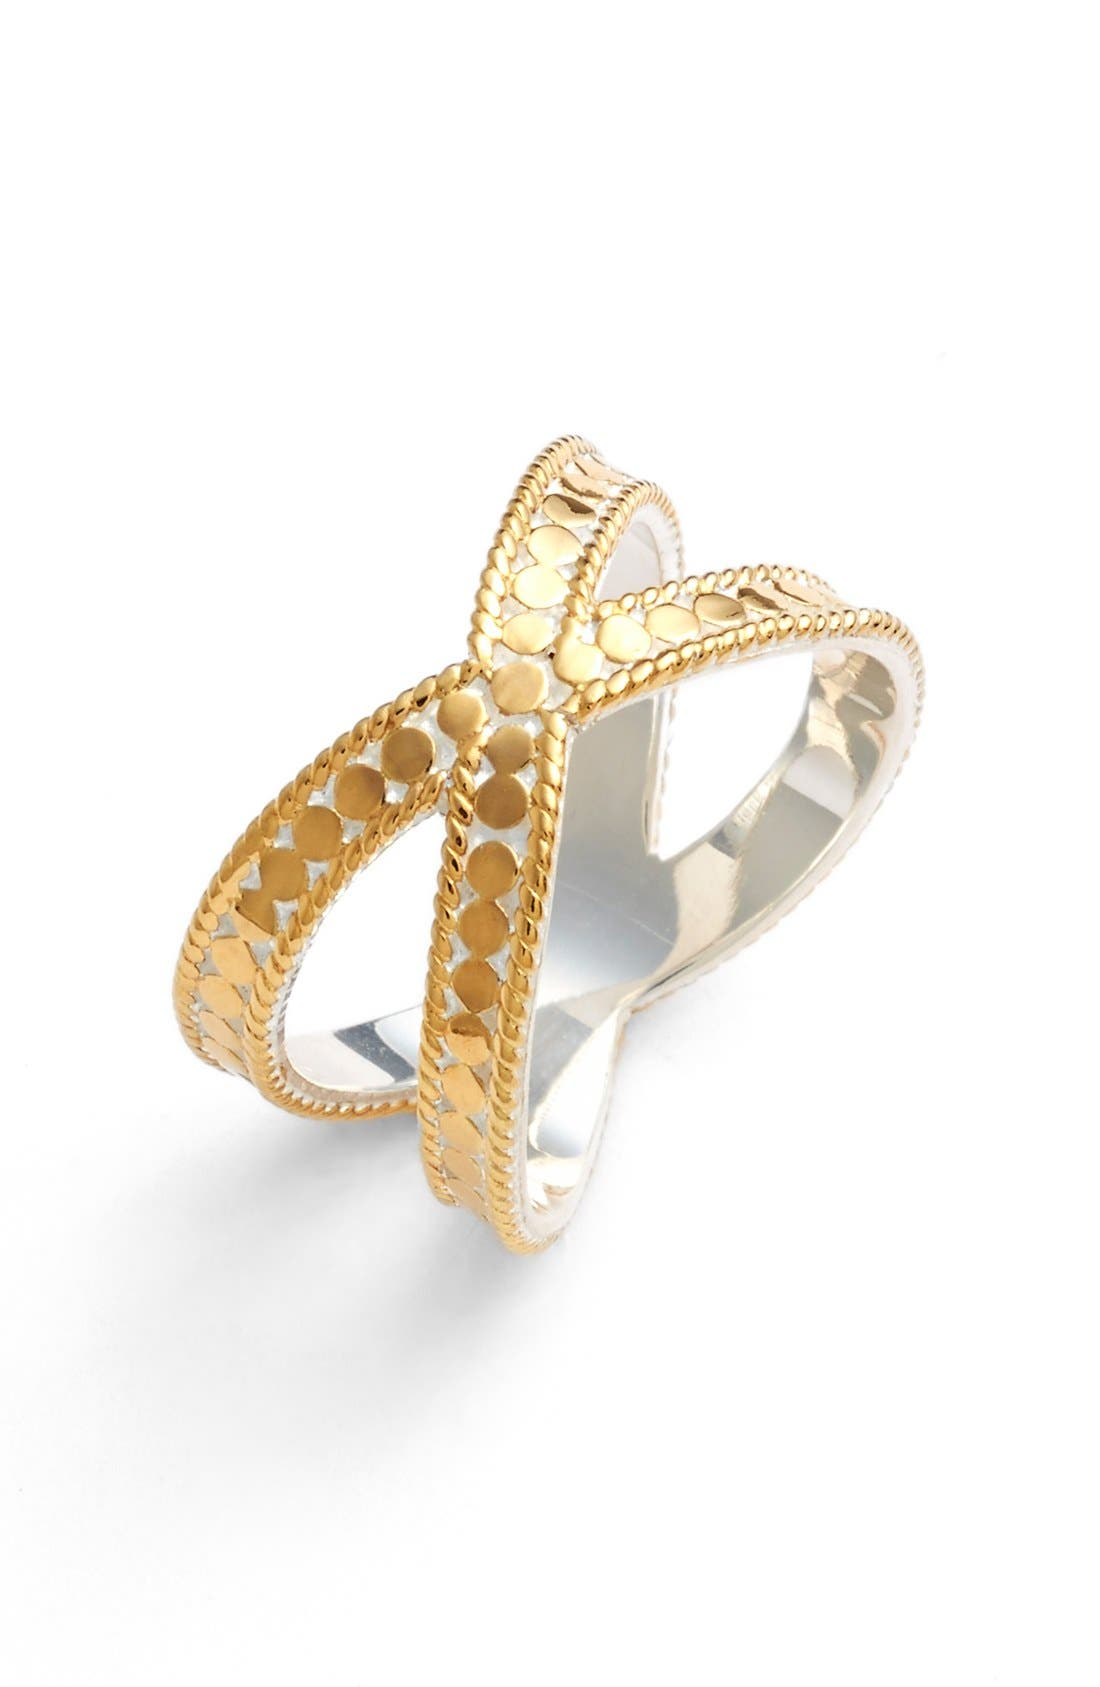 'Gili' Crossover Ring,                             Main thumbnail 1, color,                             Gold/ Silver